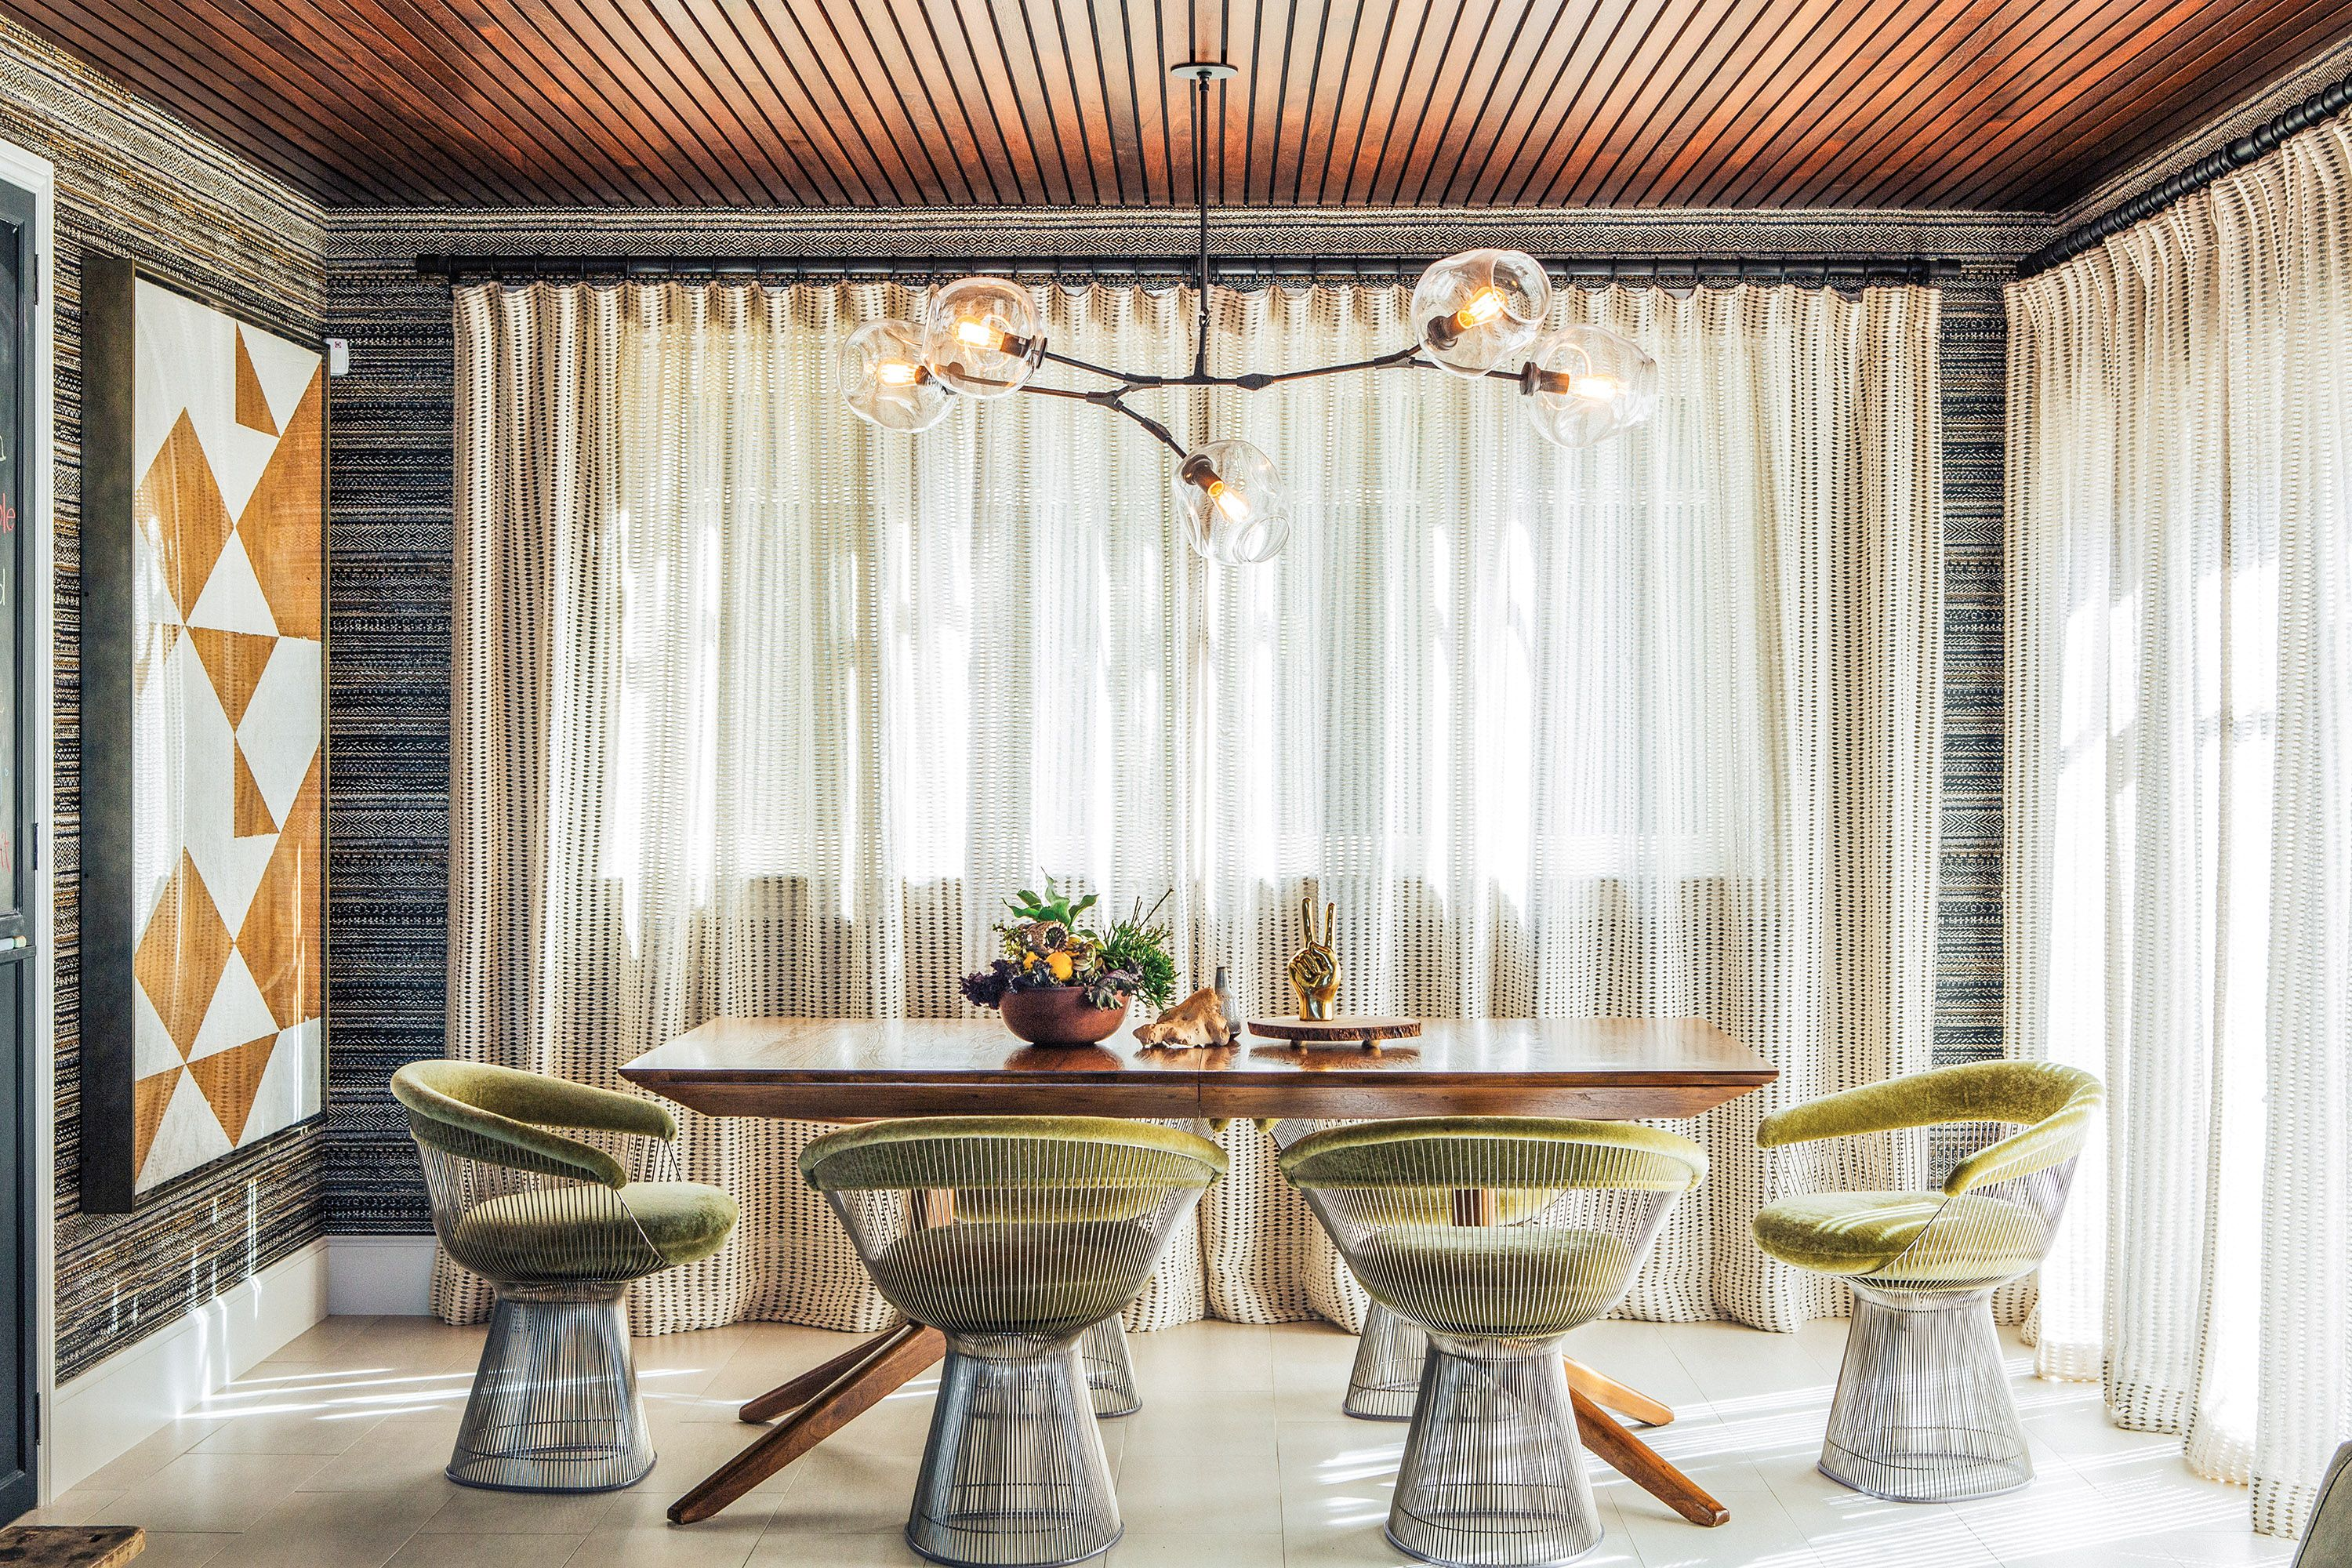 Knoll warren platner dining chairs upholstered in mohair surround a custom flo design studio table beneath a lindsey adelman brass chandelier